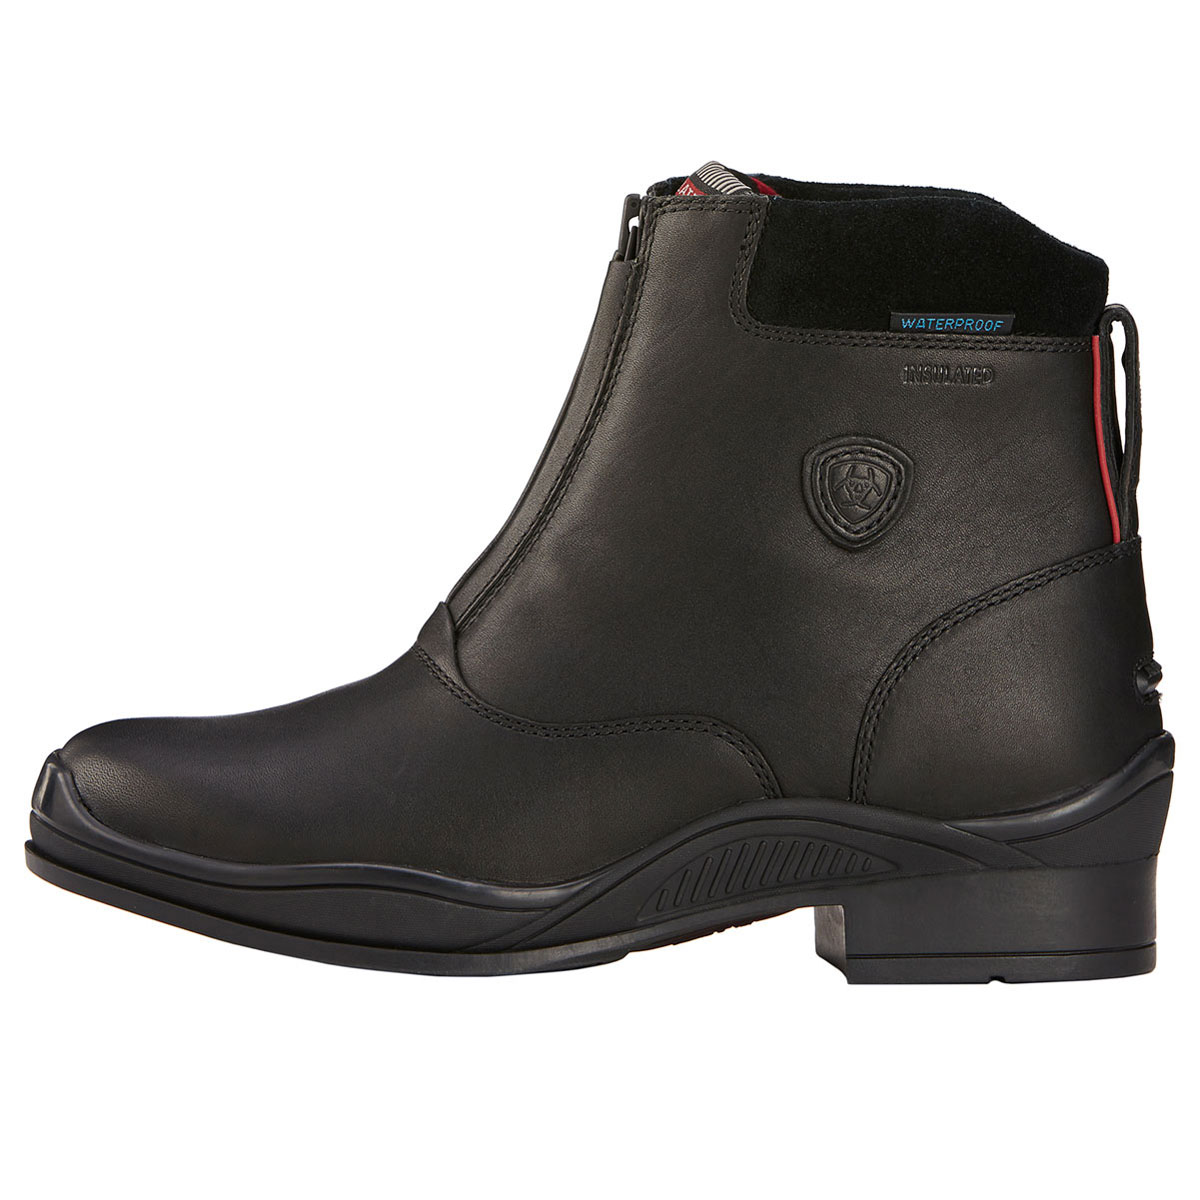 Ariat Extreme Zip Paddock H20 Insulated